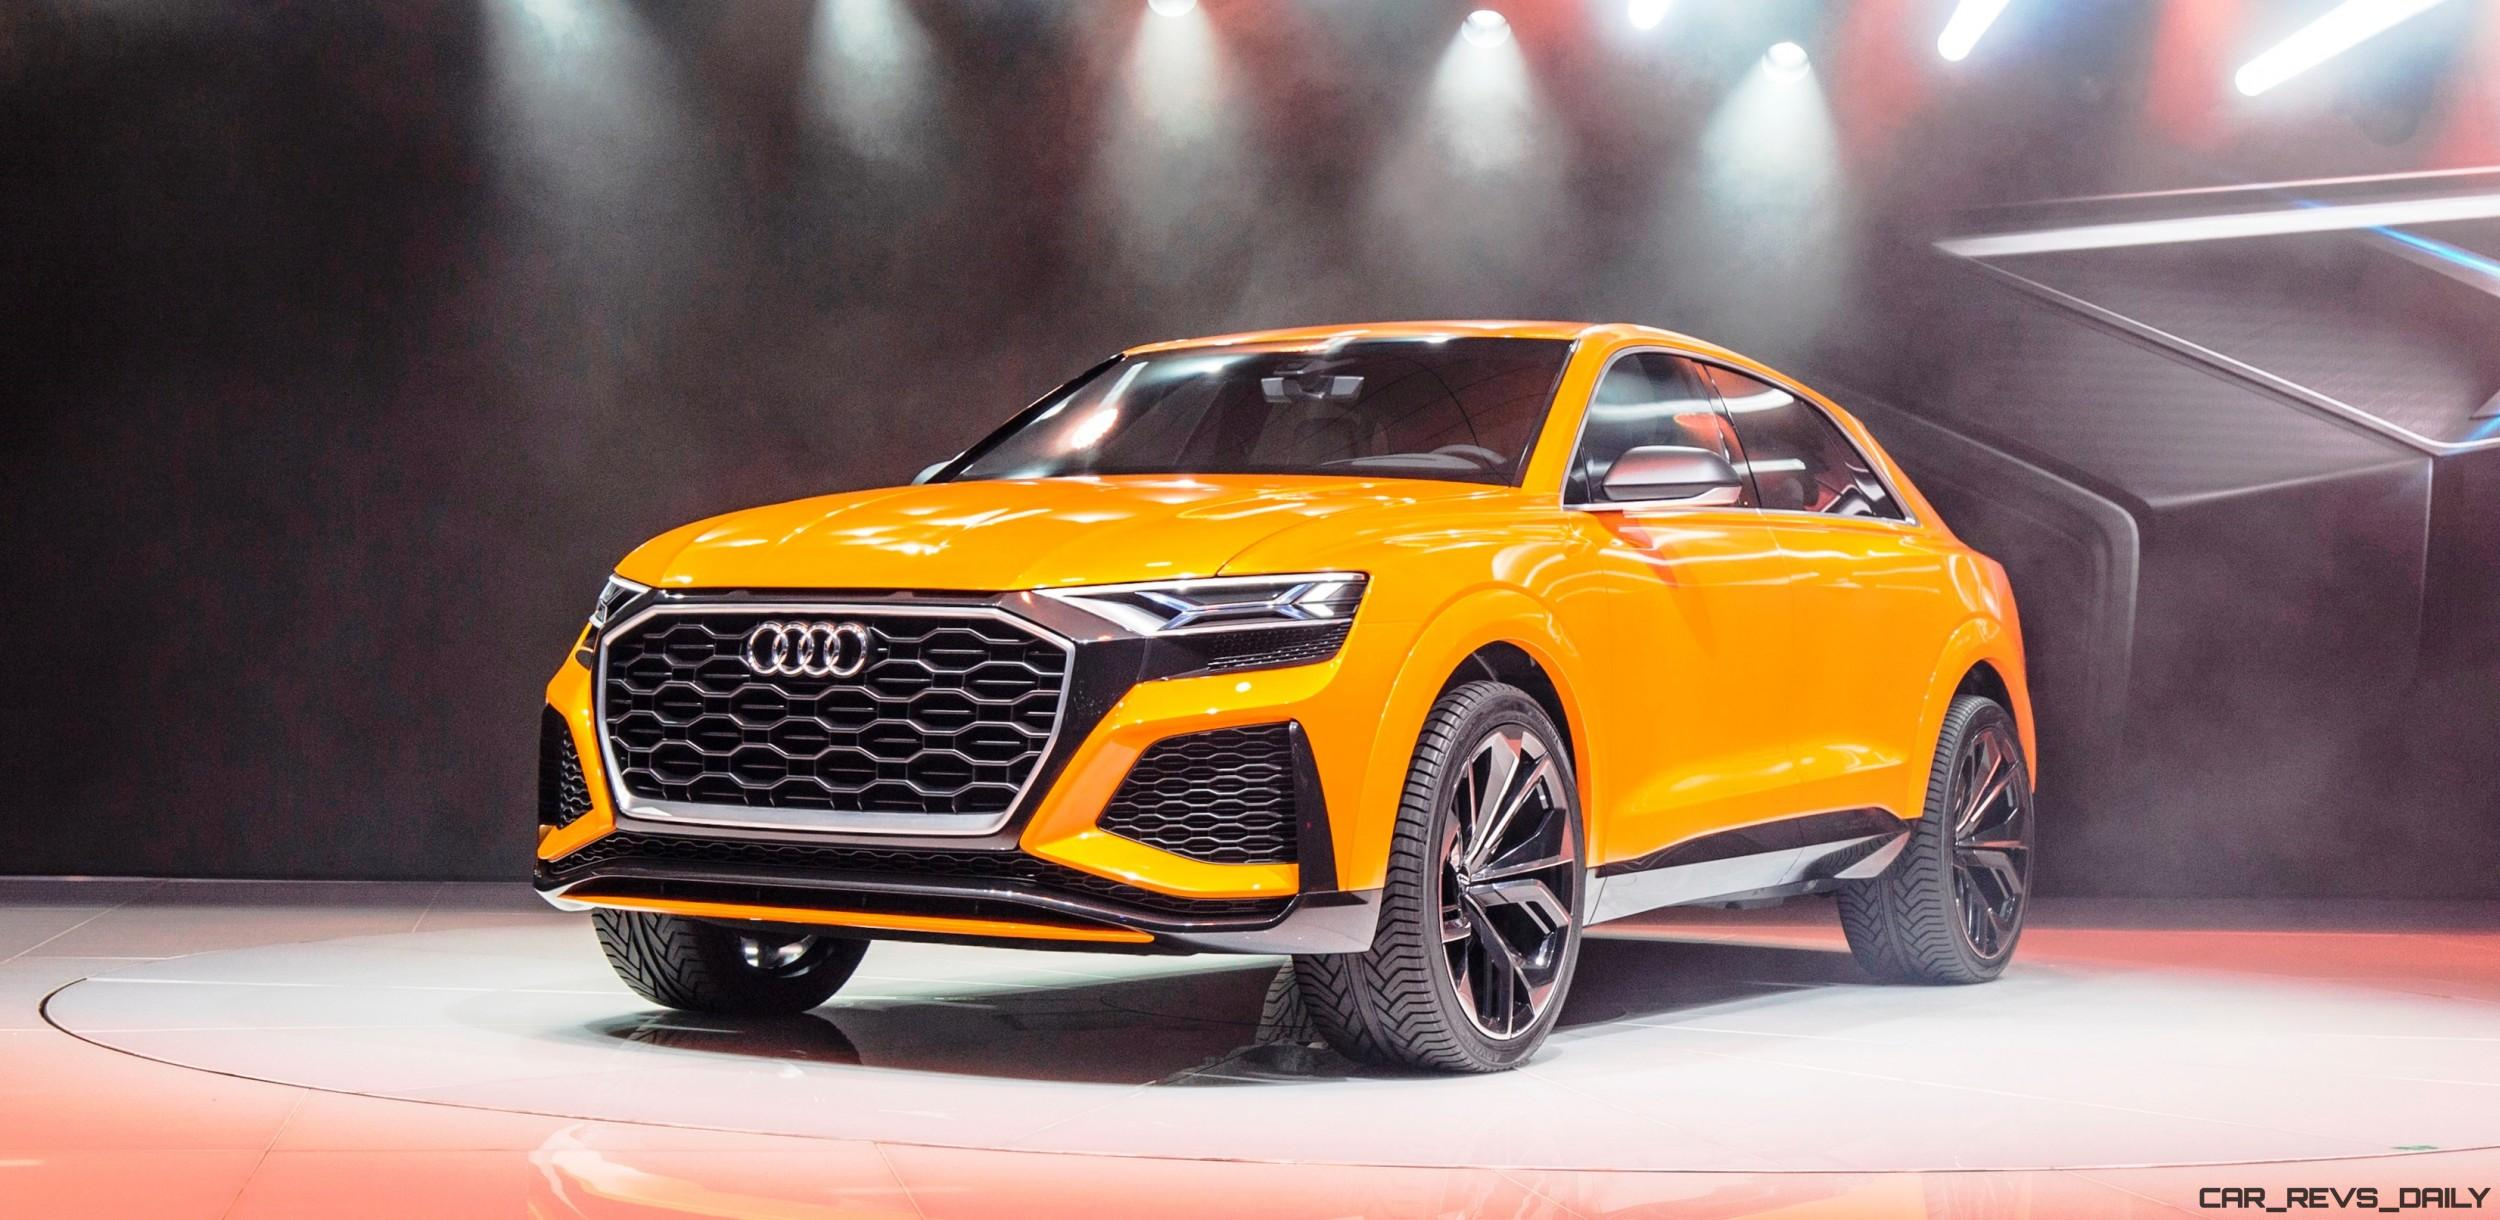 audi q8 confirmed for 2019 modelyear 22 new photos. Black Bedroom Furniture Sets. Home Design Ideas